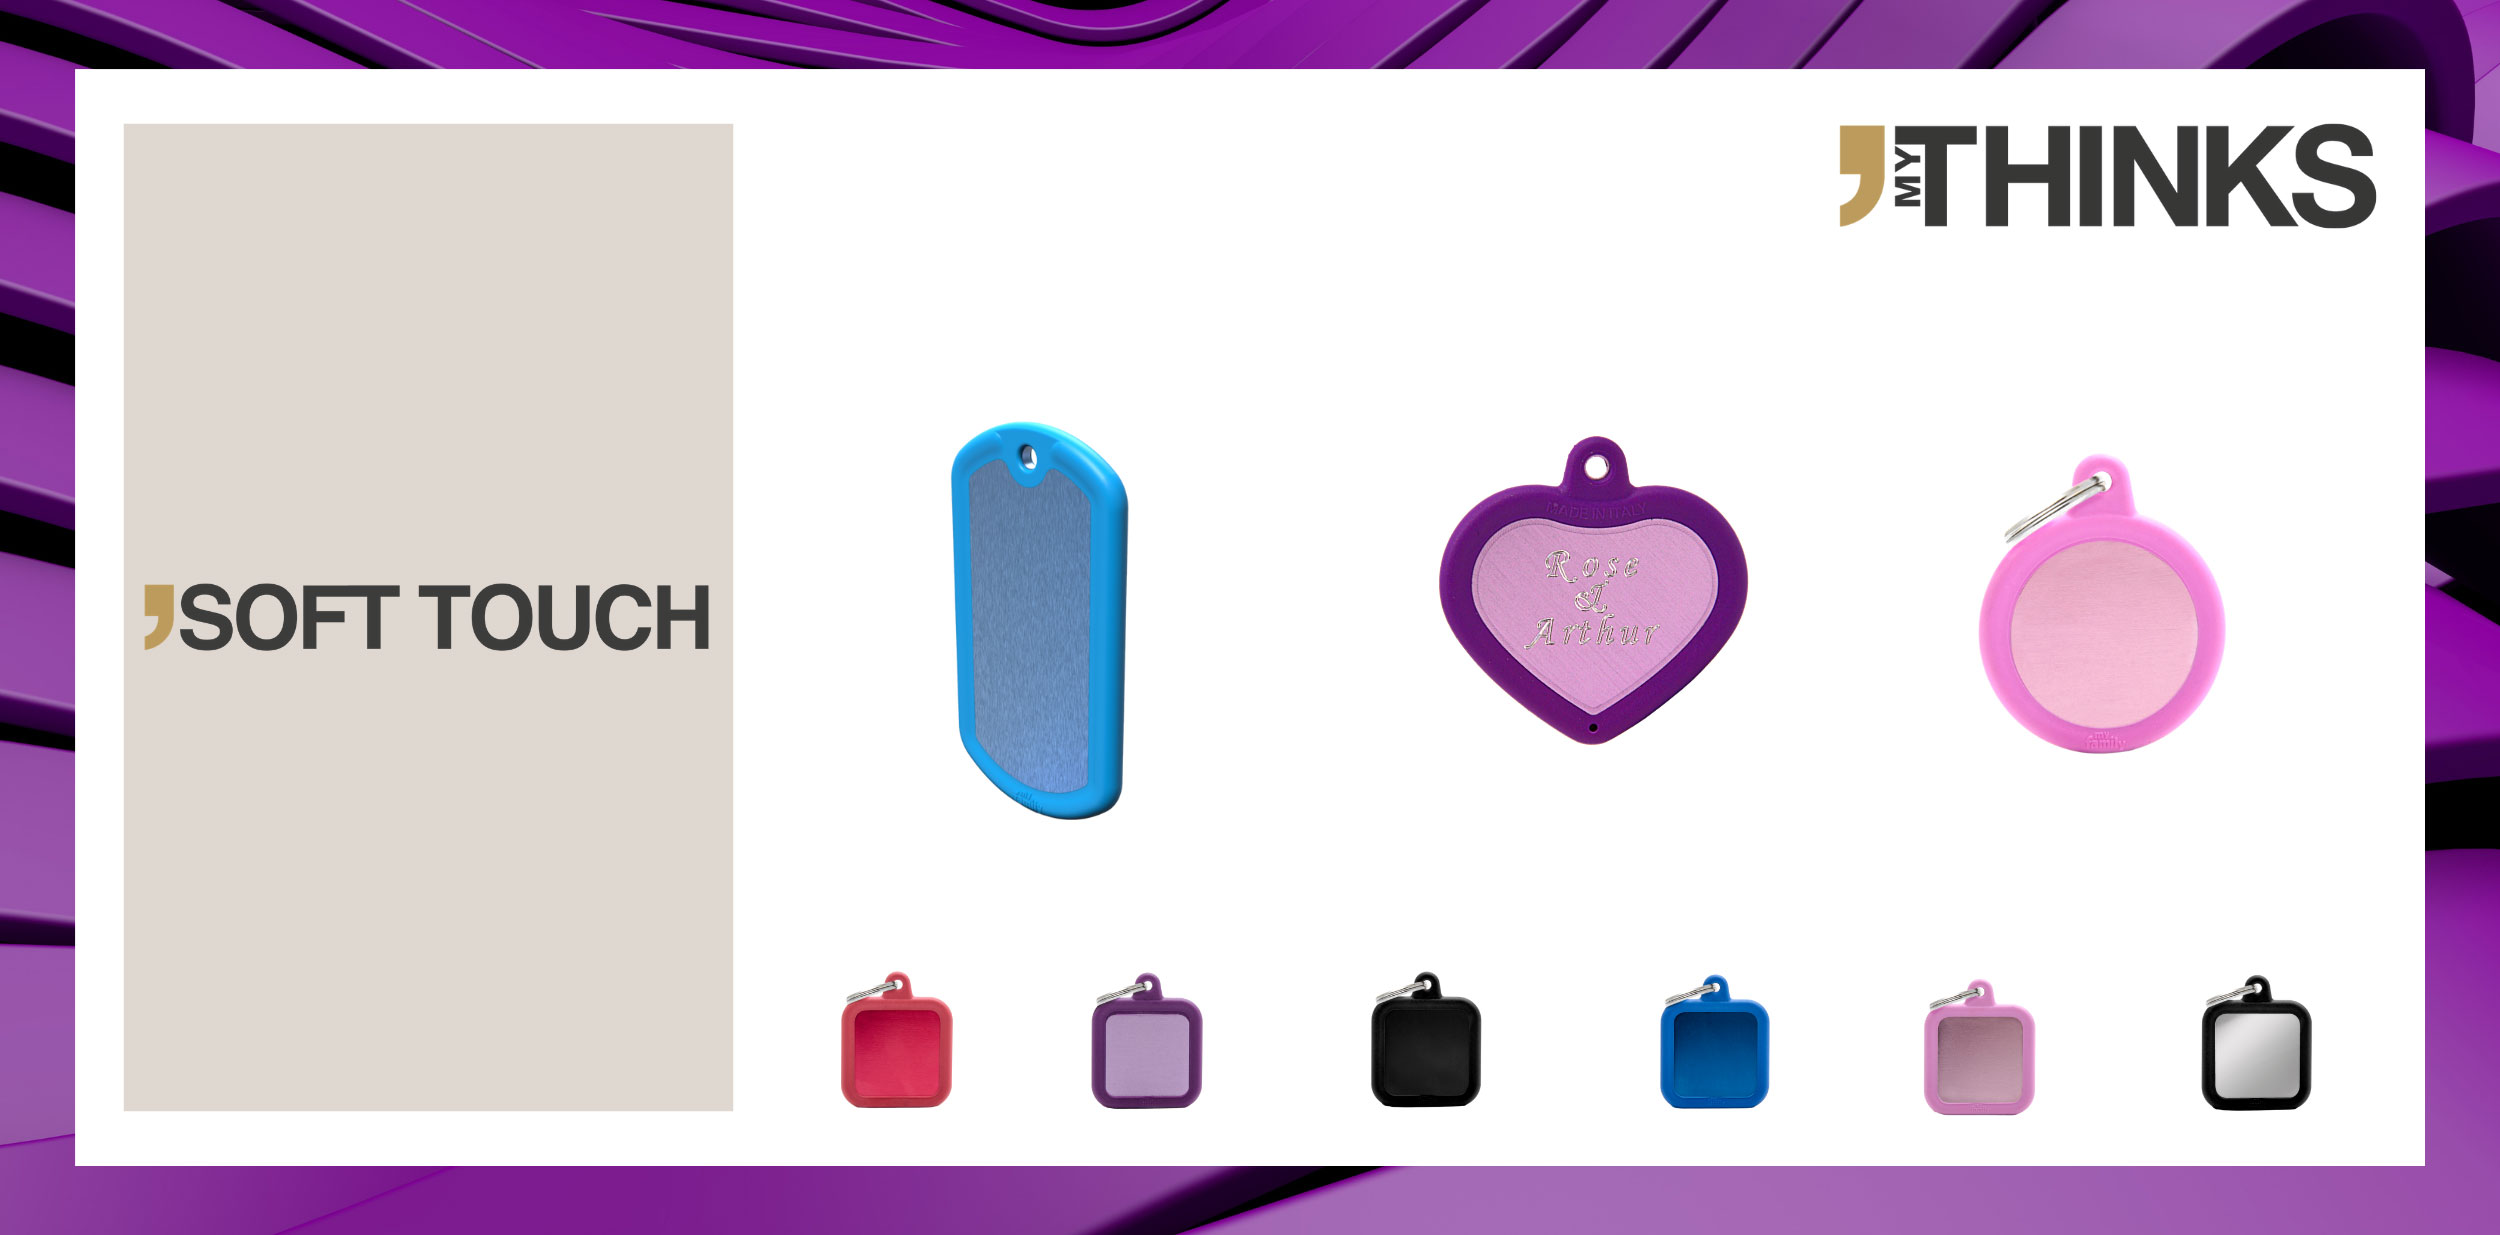 3 personalized gifts in aluminum and brass with rubber fusioned braid from Soft Touch collection : light blue luggage tag, purple heart charm personalized with diamond engraving, pink circle medal